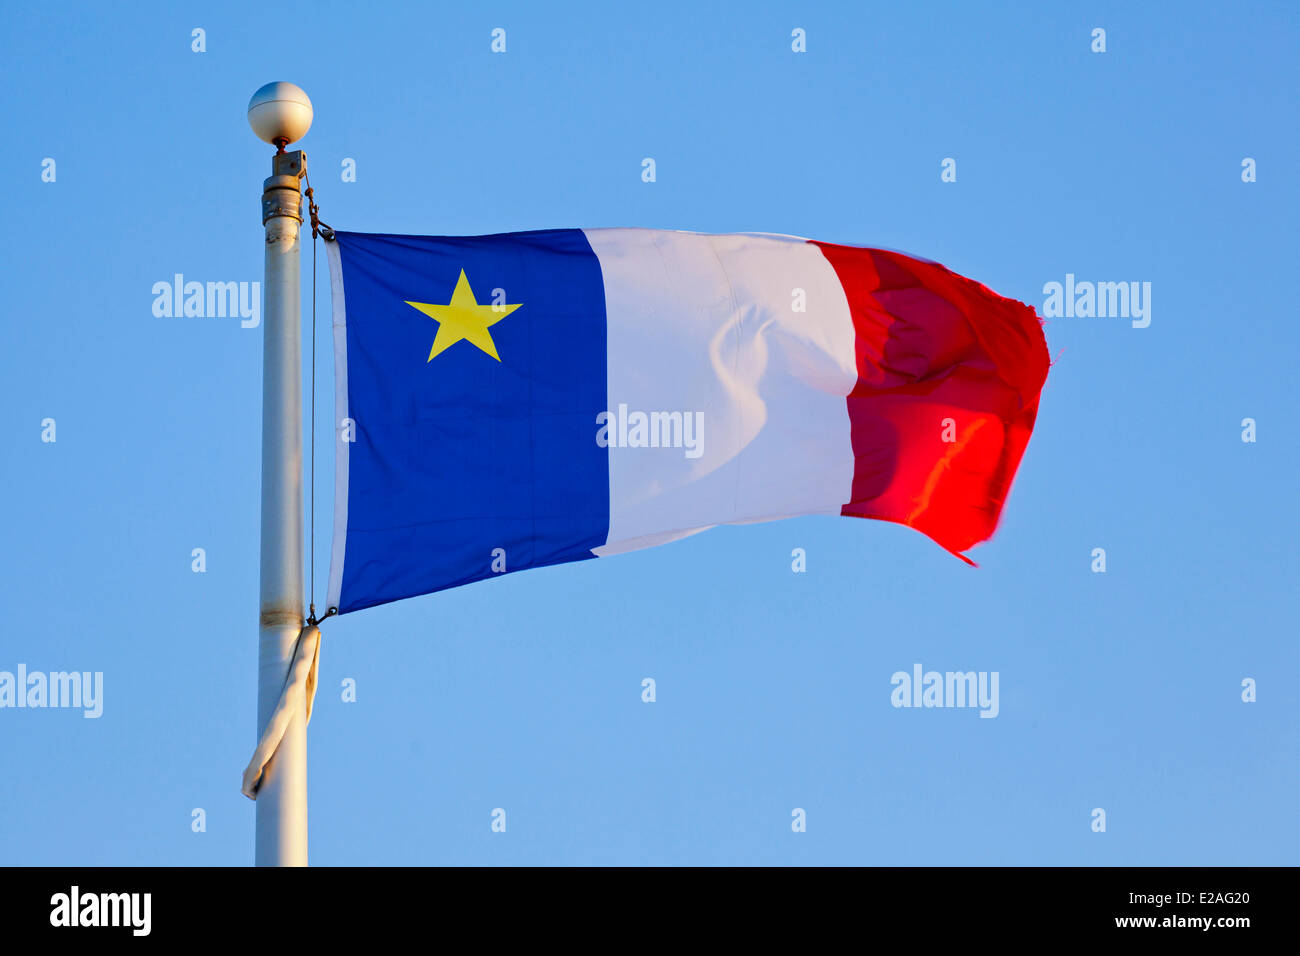 Canada, New Brunswick Province, the Acadian flag - Stock Image